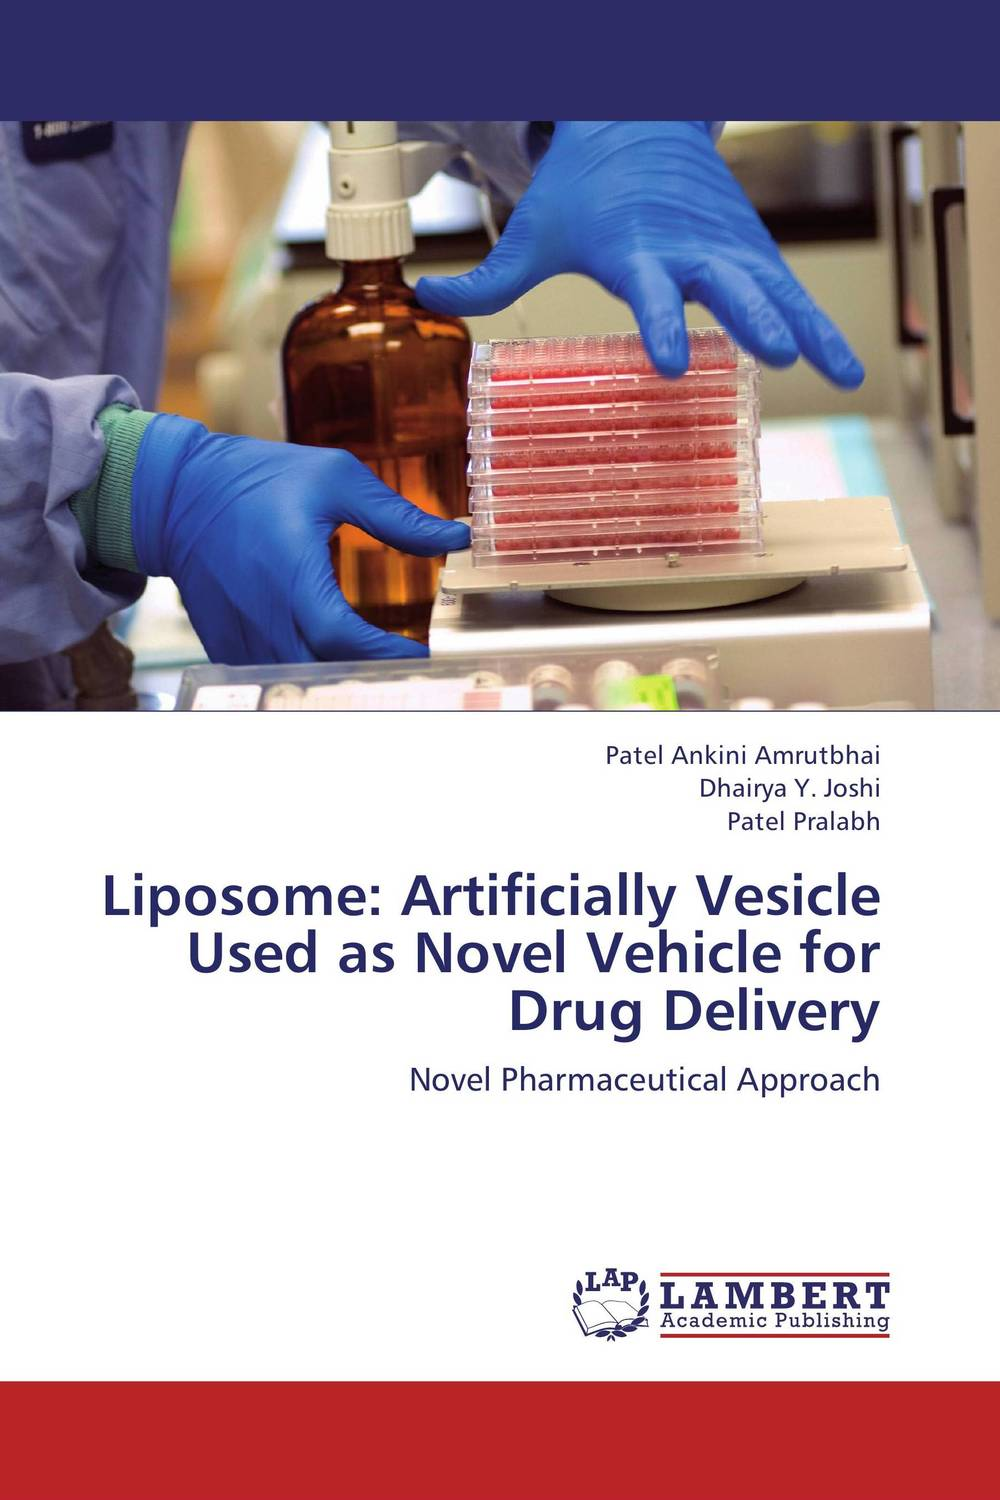 Liposome: Artificially Vesicle Used as Novel Vehicle for Drug Delivery abhishek kumar sah sunil k jain and manmohan singh jangdey a recent approaches in topical drug delivery system